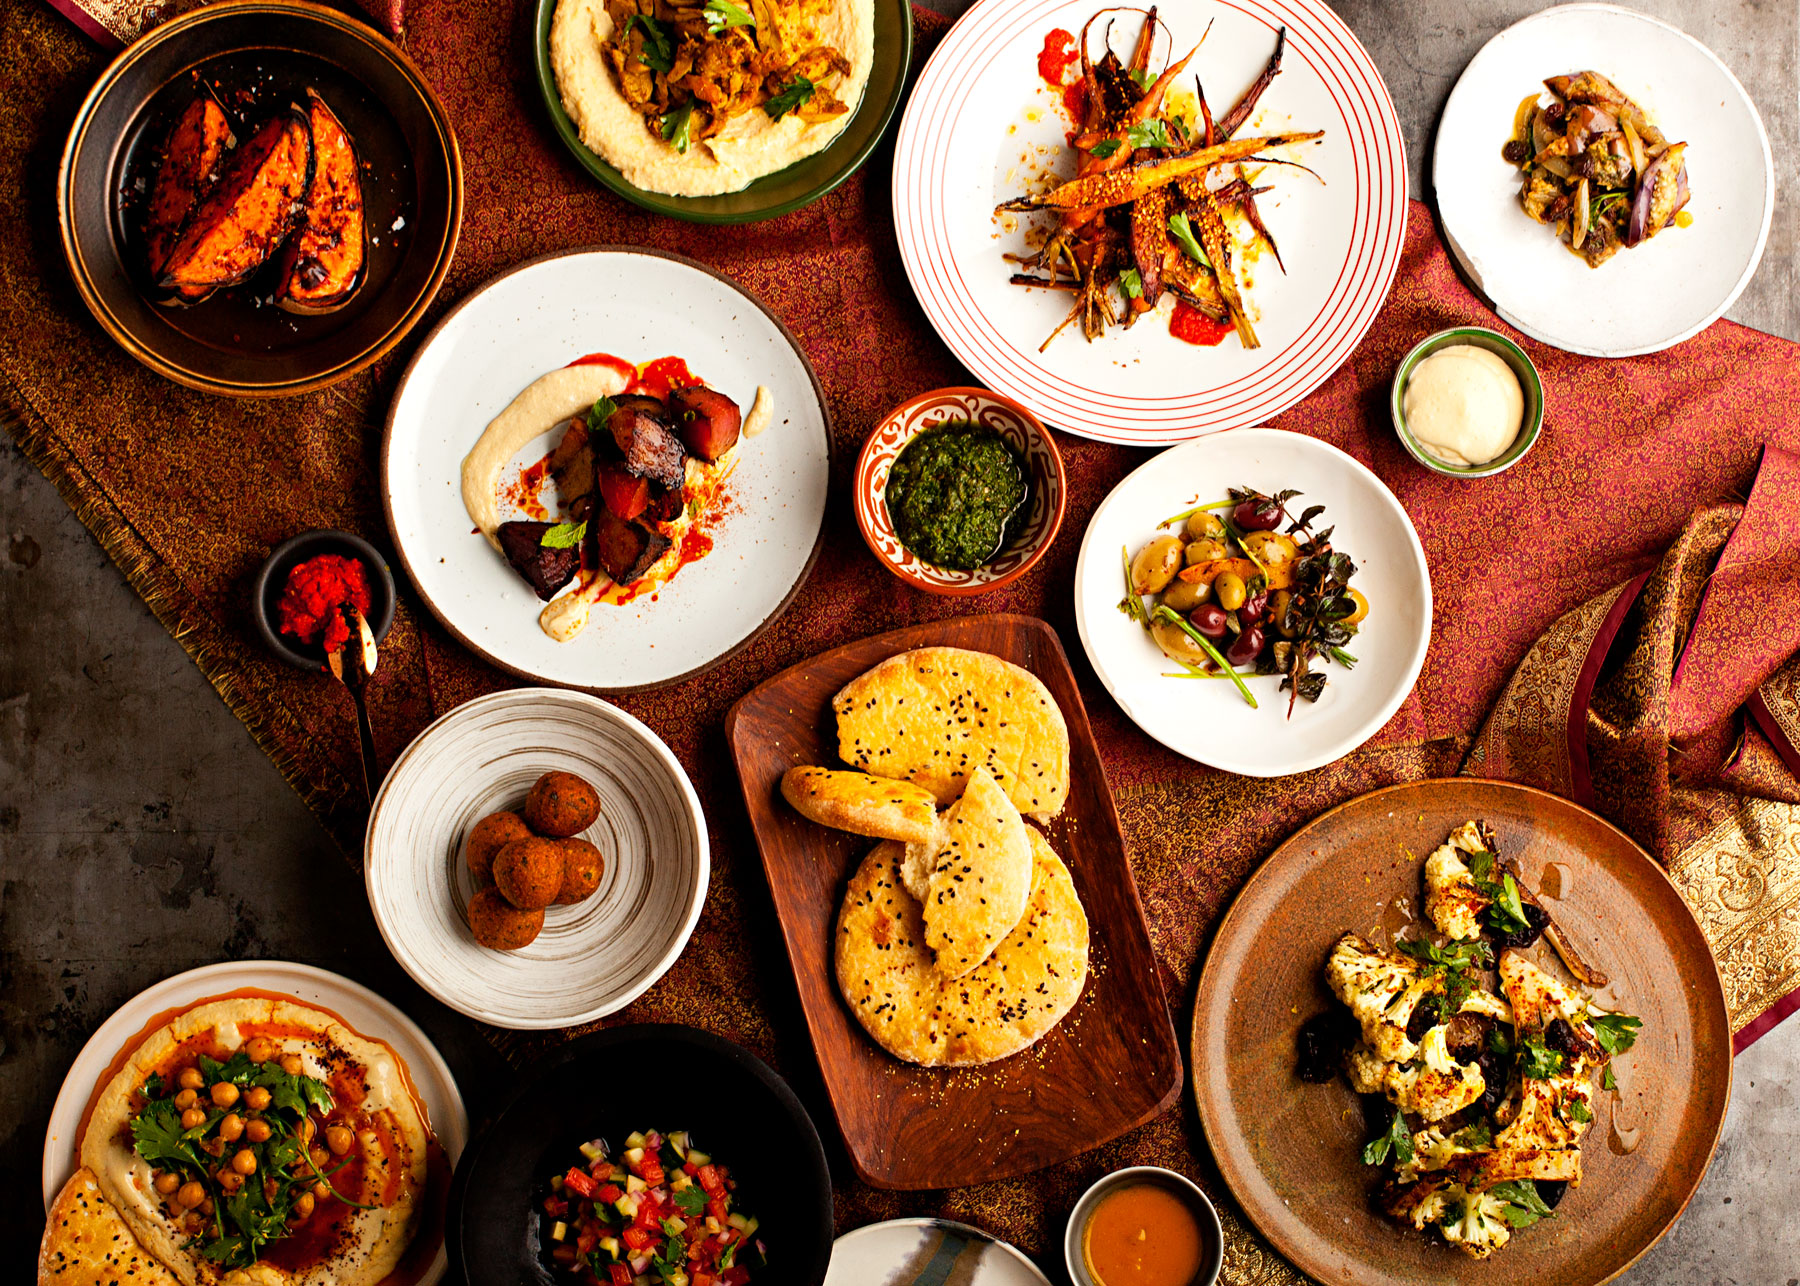 A selection of Israeli small plate dishes created at Shai, the new restaurant concept by Franklin Becker